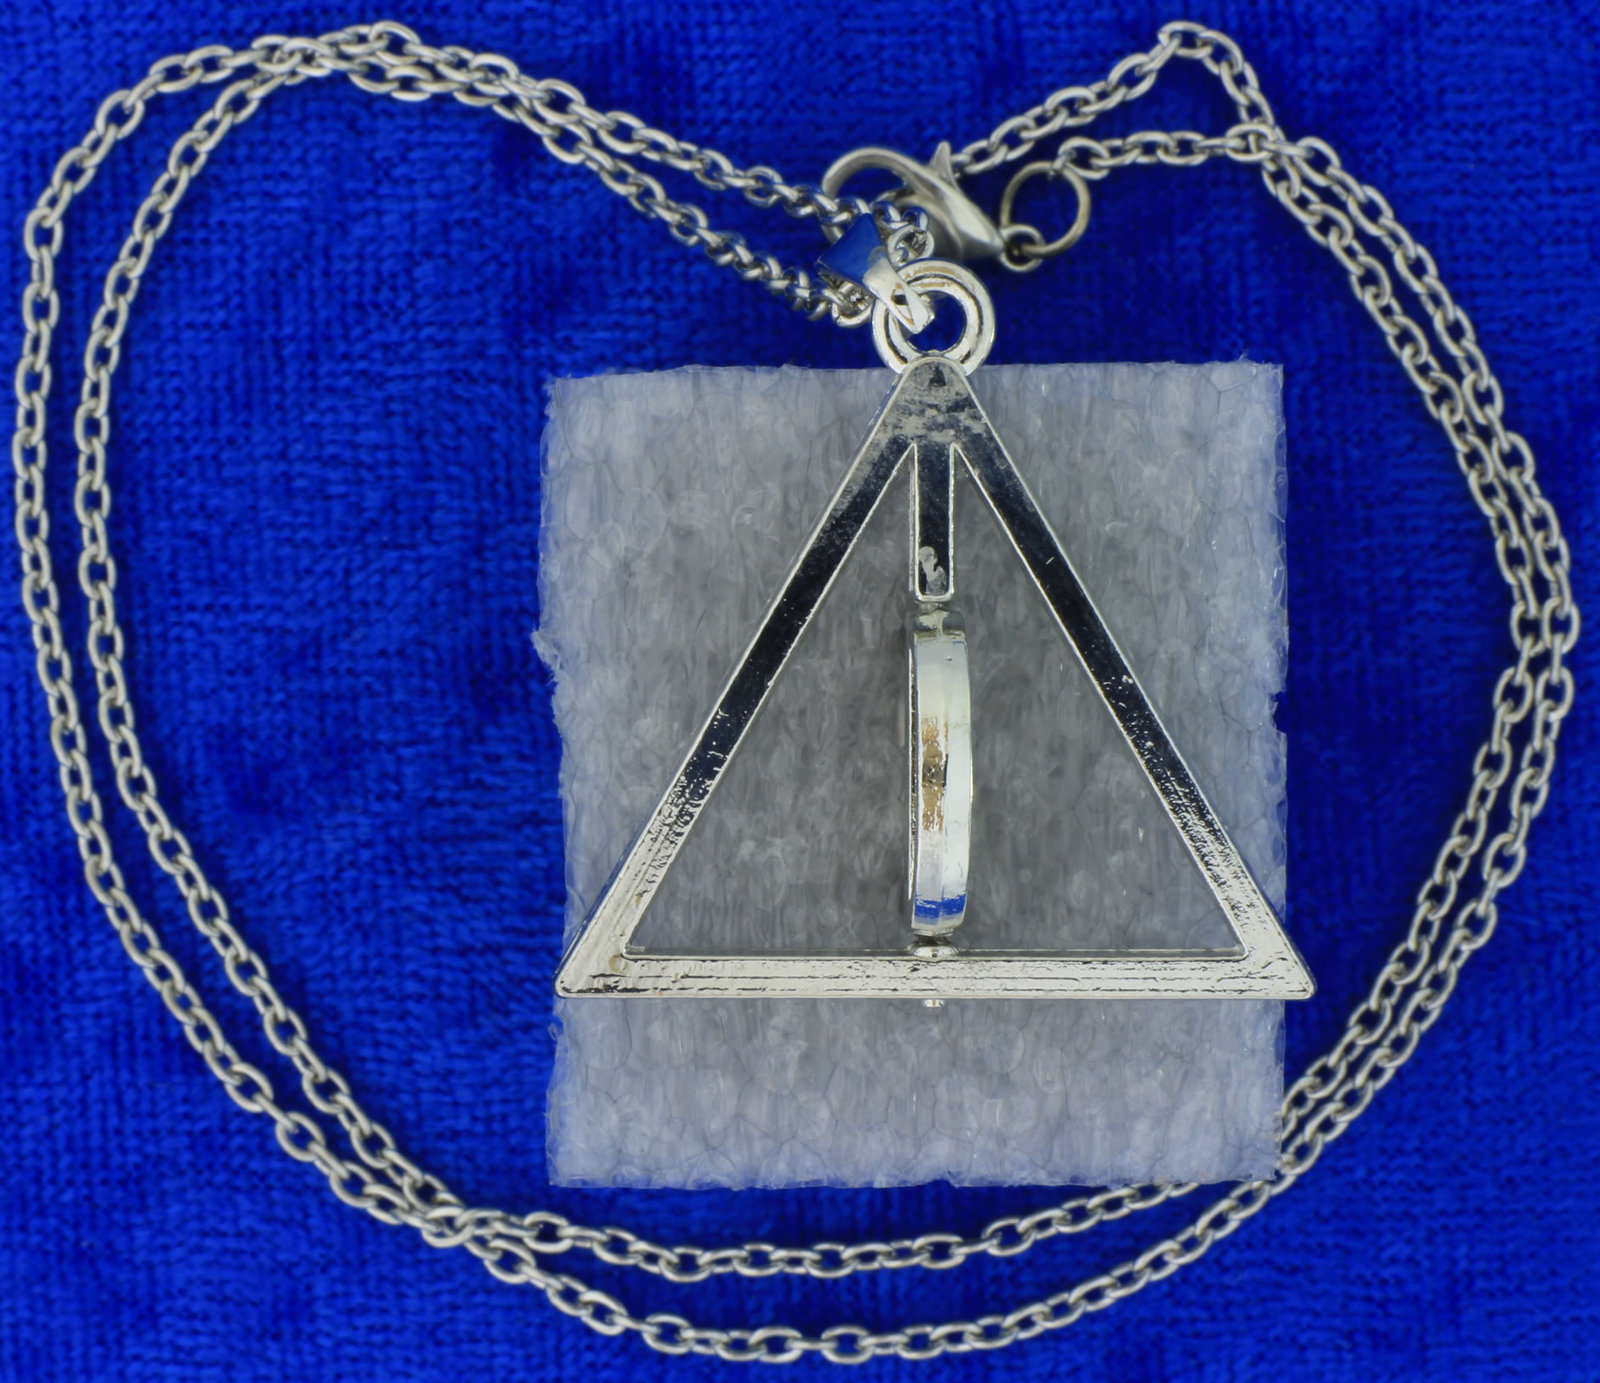 Deathly Hallows Necklace or Keychain Spinning Circle Chain Style Length Choice